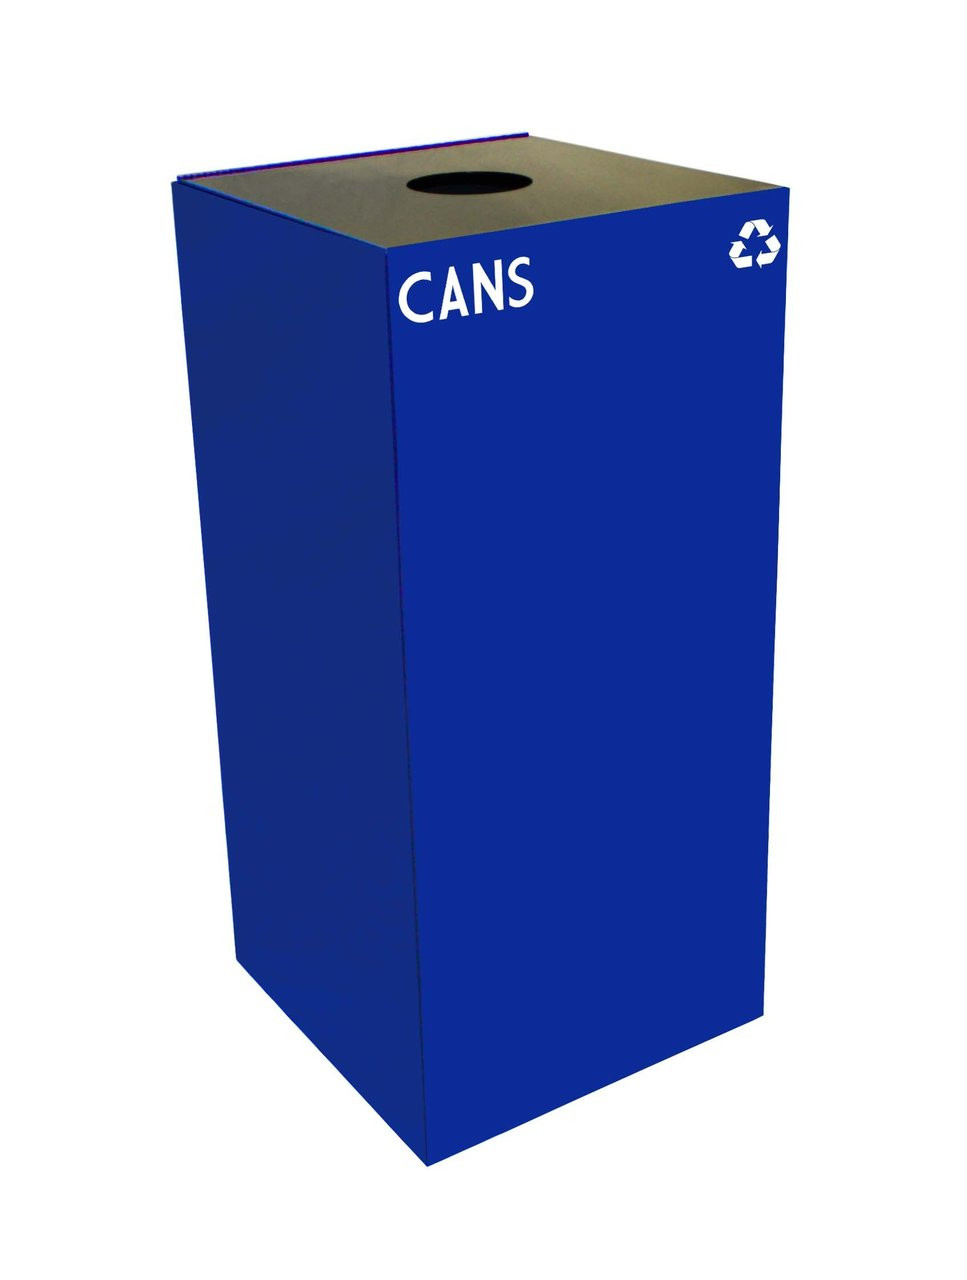 32 Gallon Metal Geocube 32GC0 Recycling Bin Receptacle for Cans